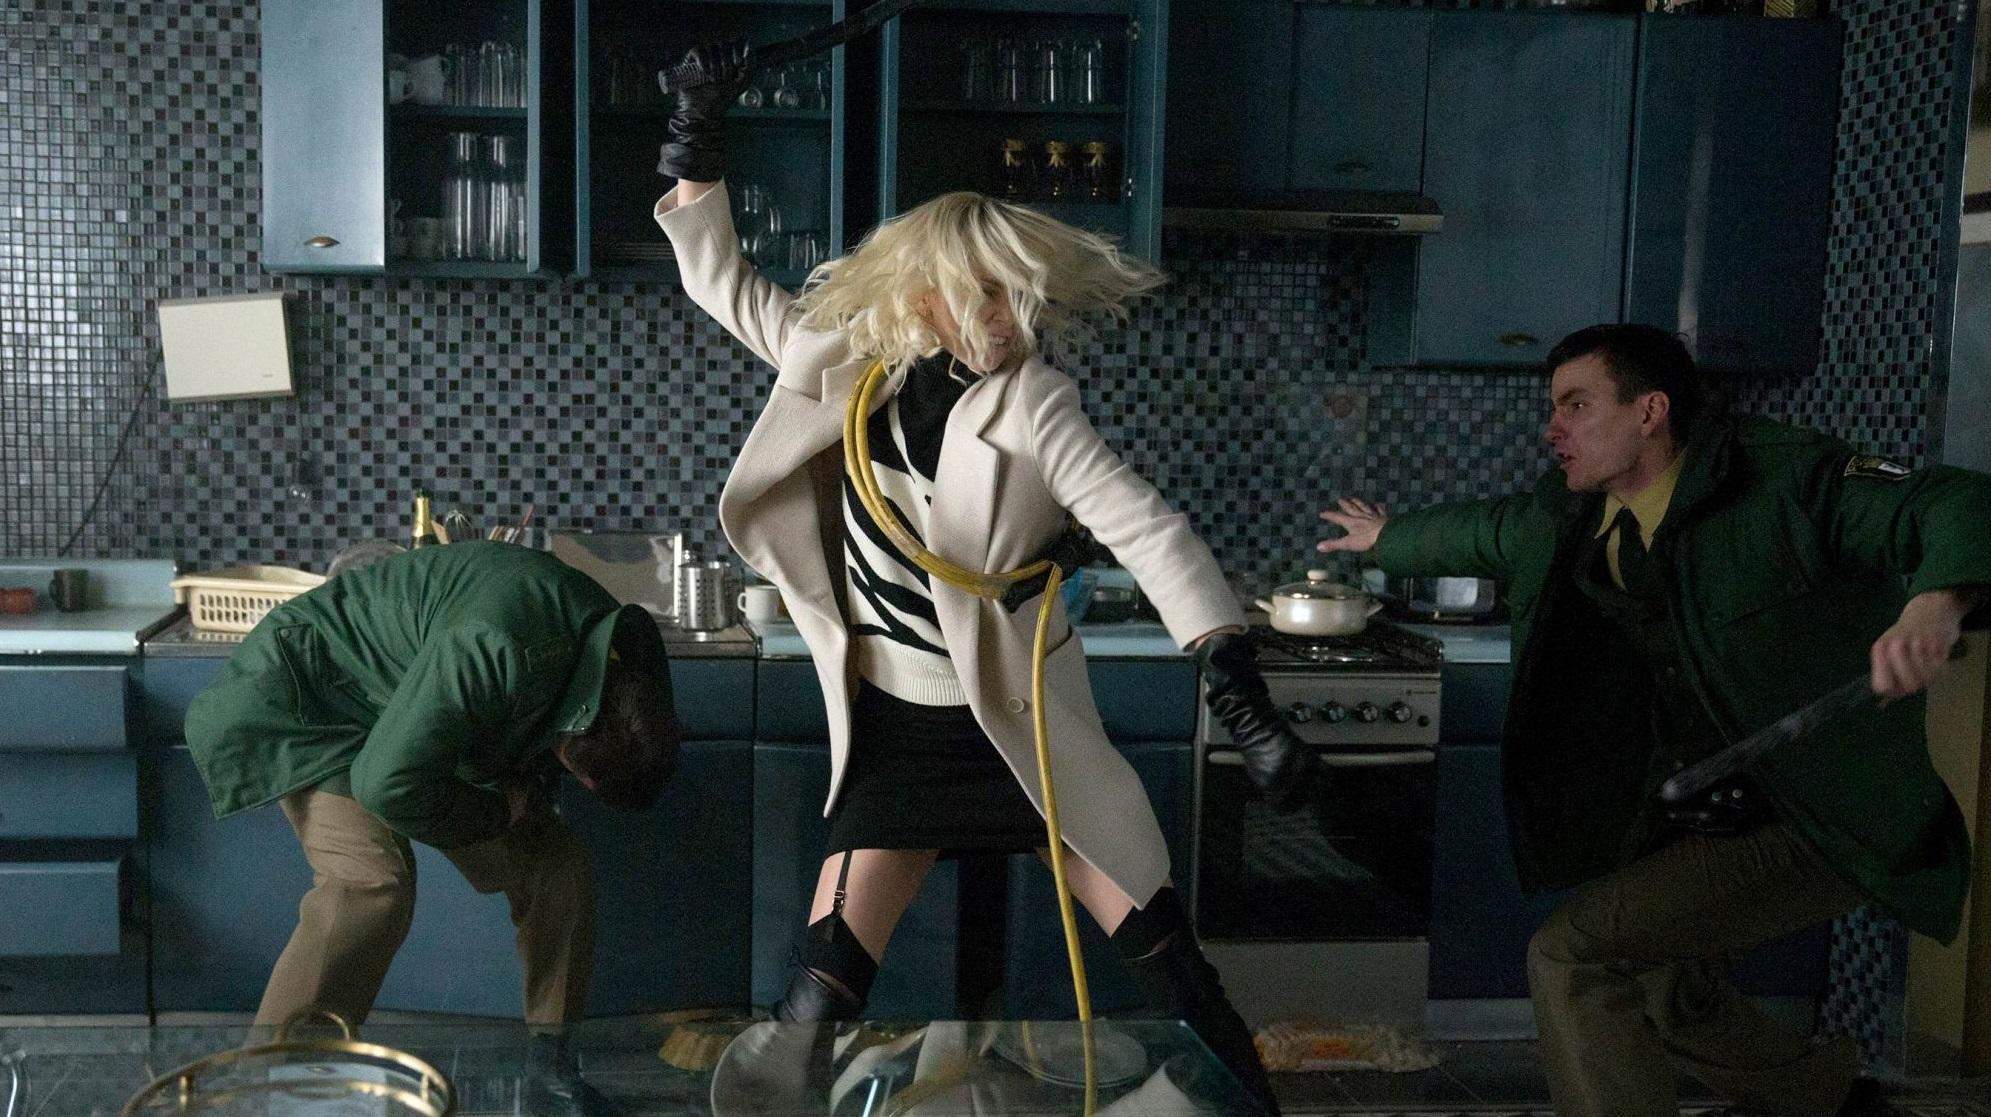 Charlize Theron in action in 'Atomic Blonde' (credit: Focus Features)